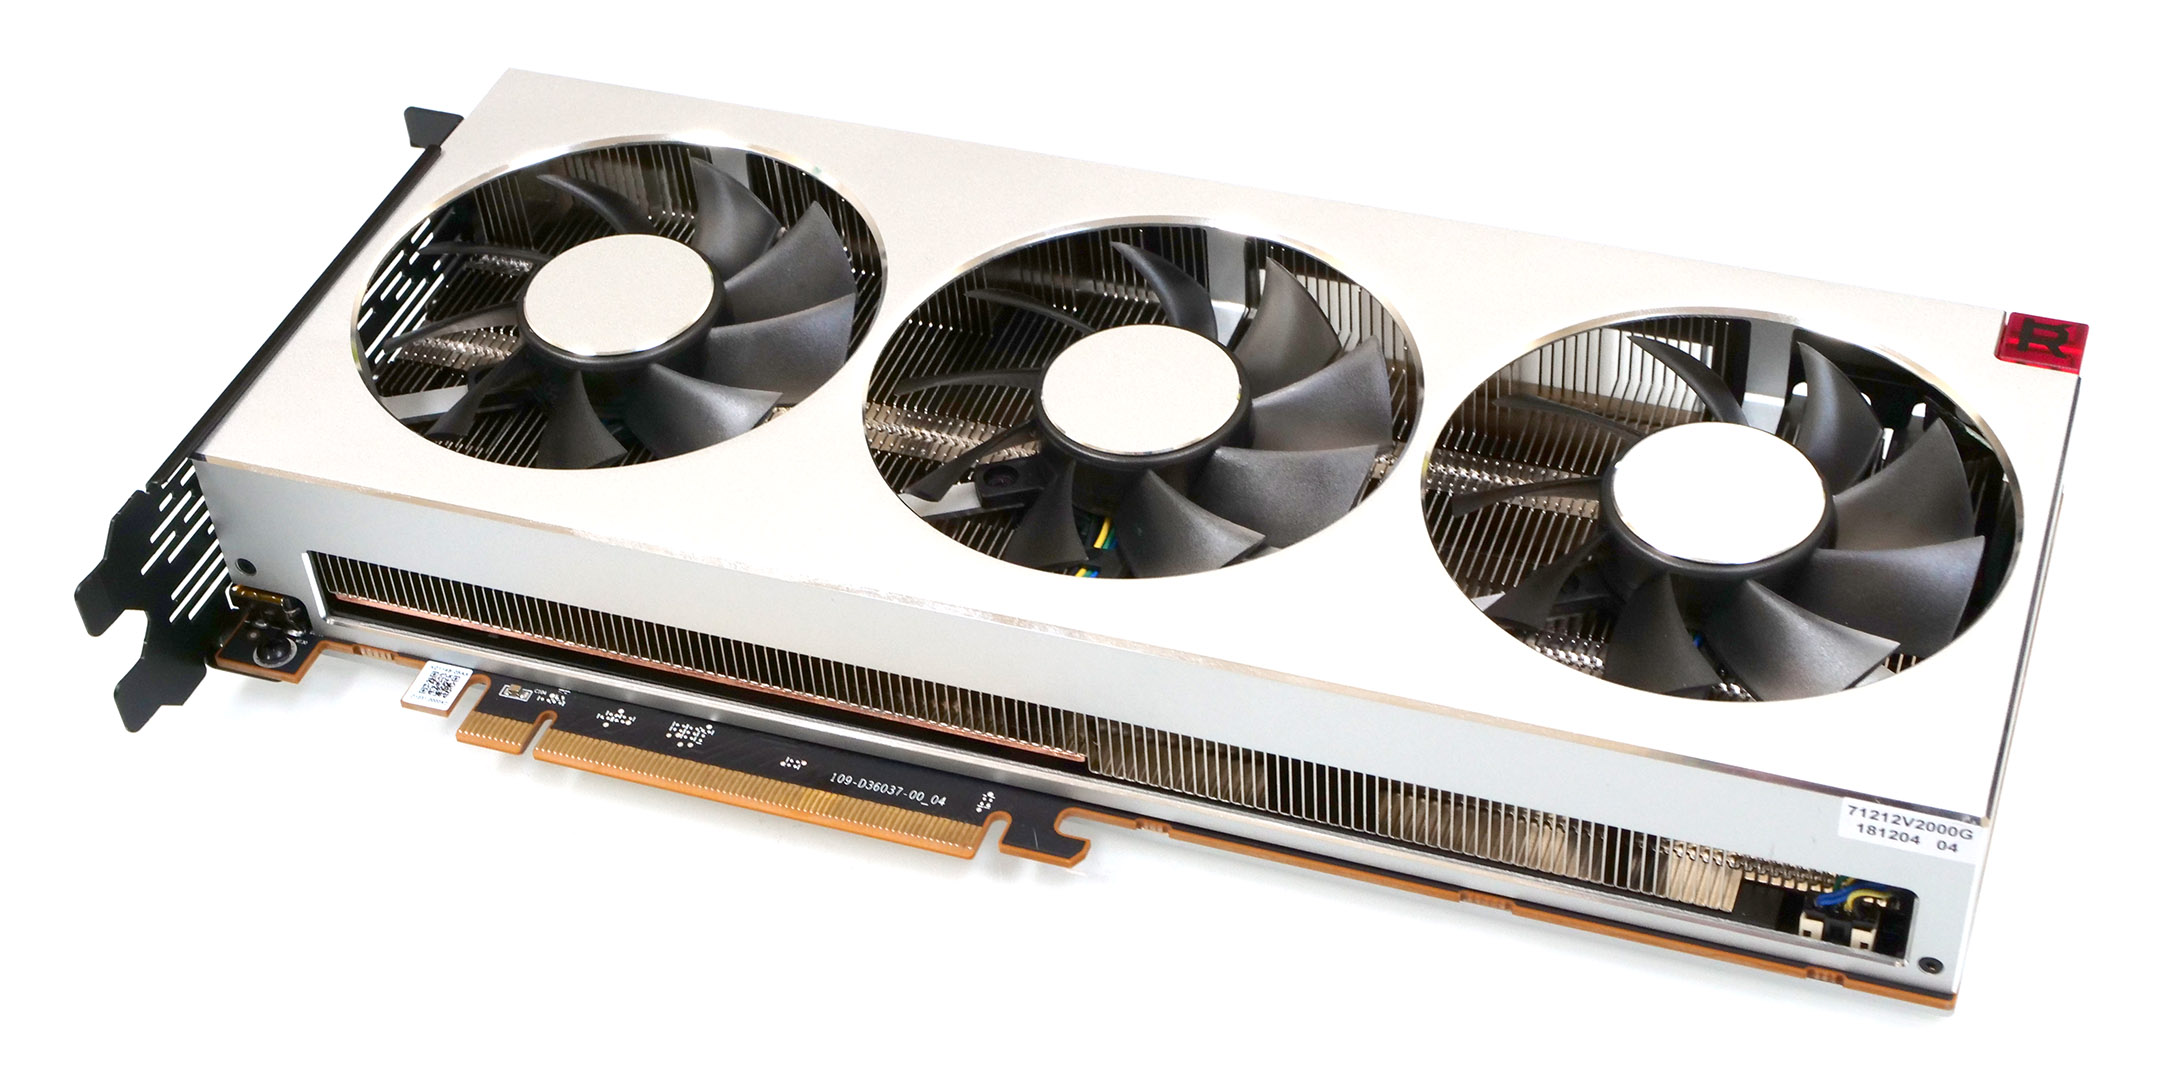 AMD Radeon 7 Review: Faster Than RTX 2080?